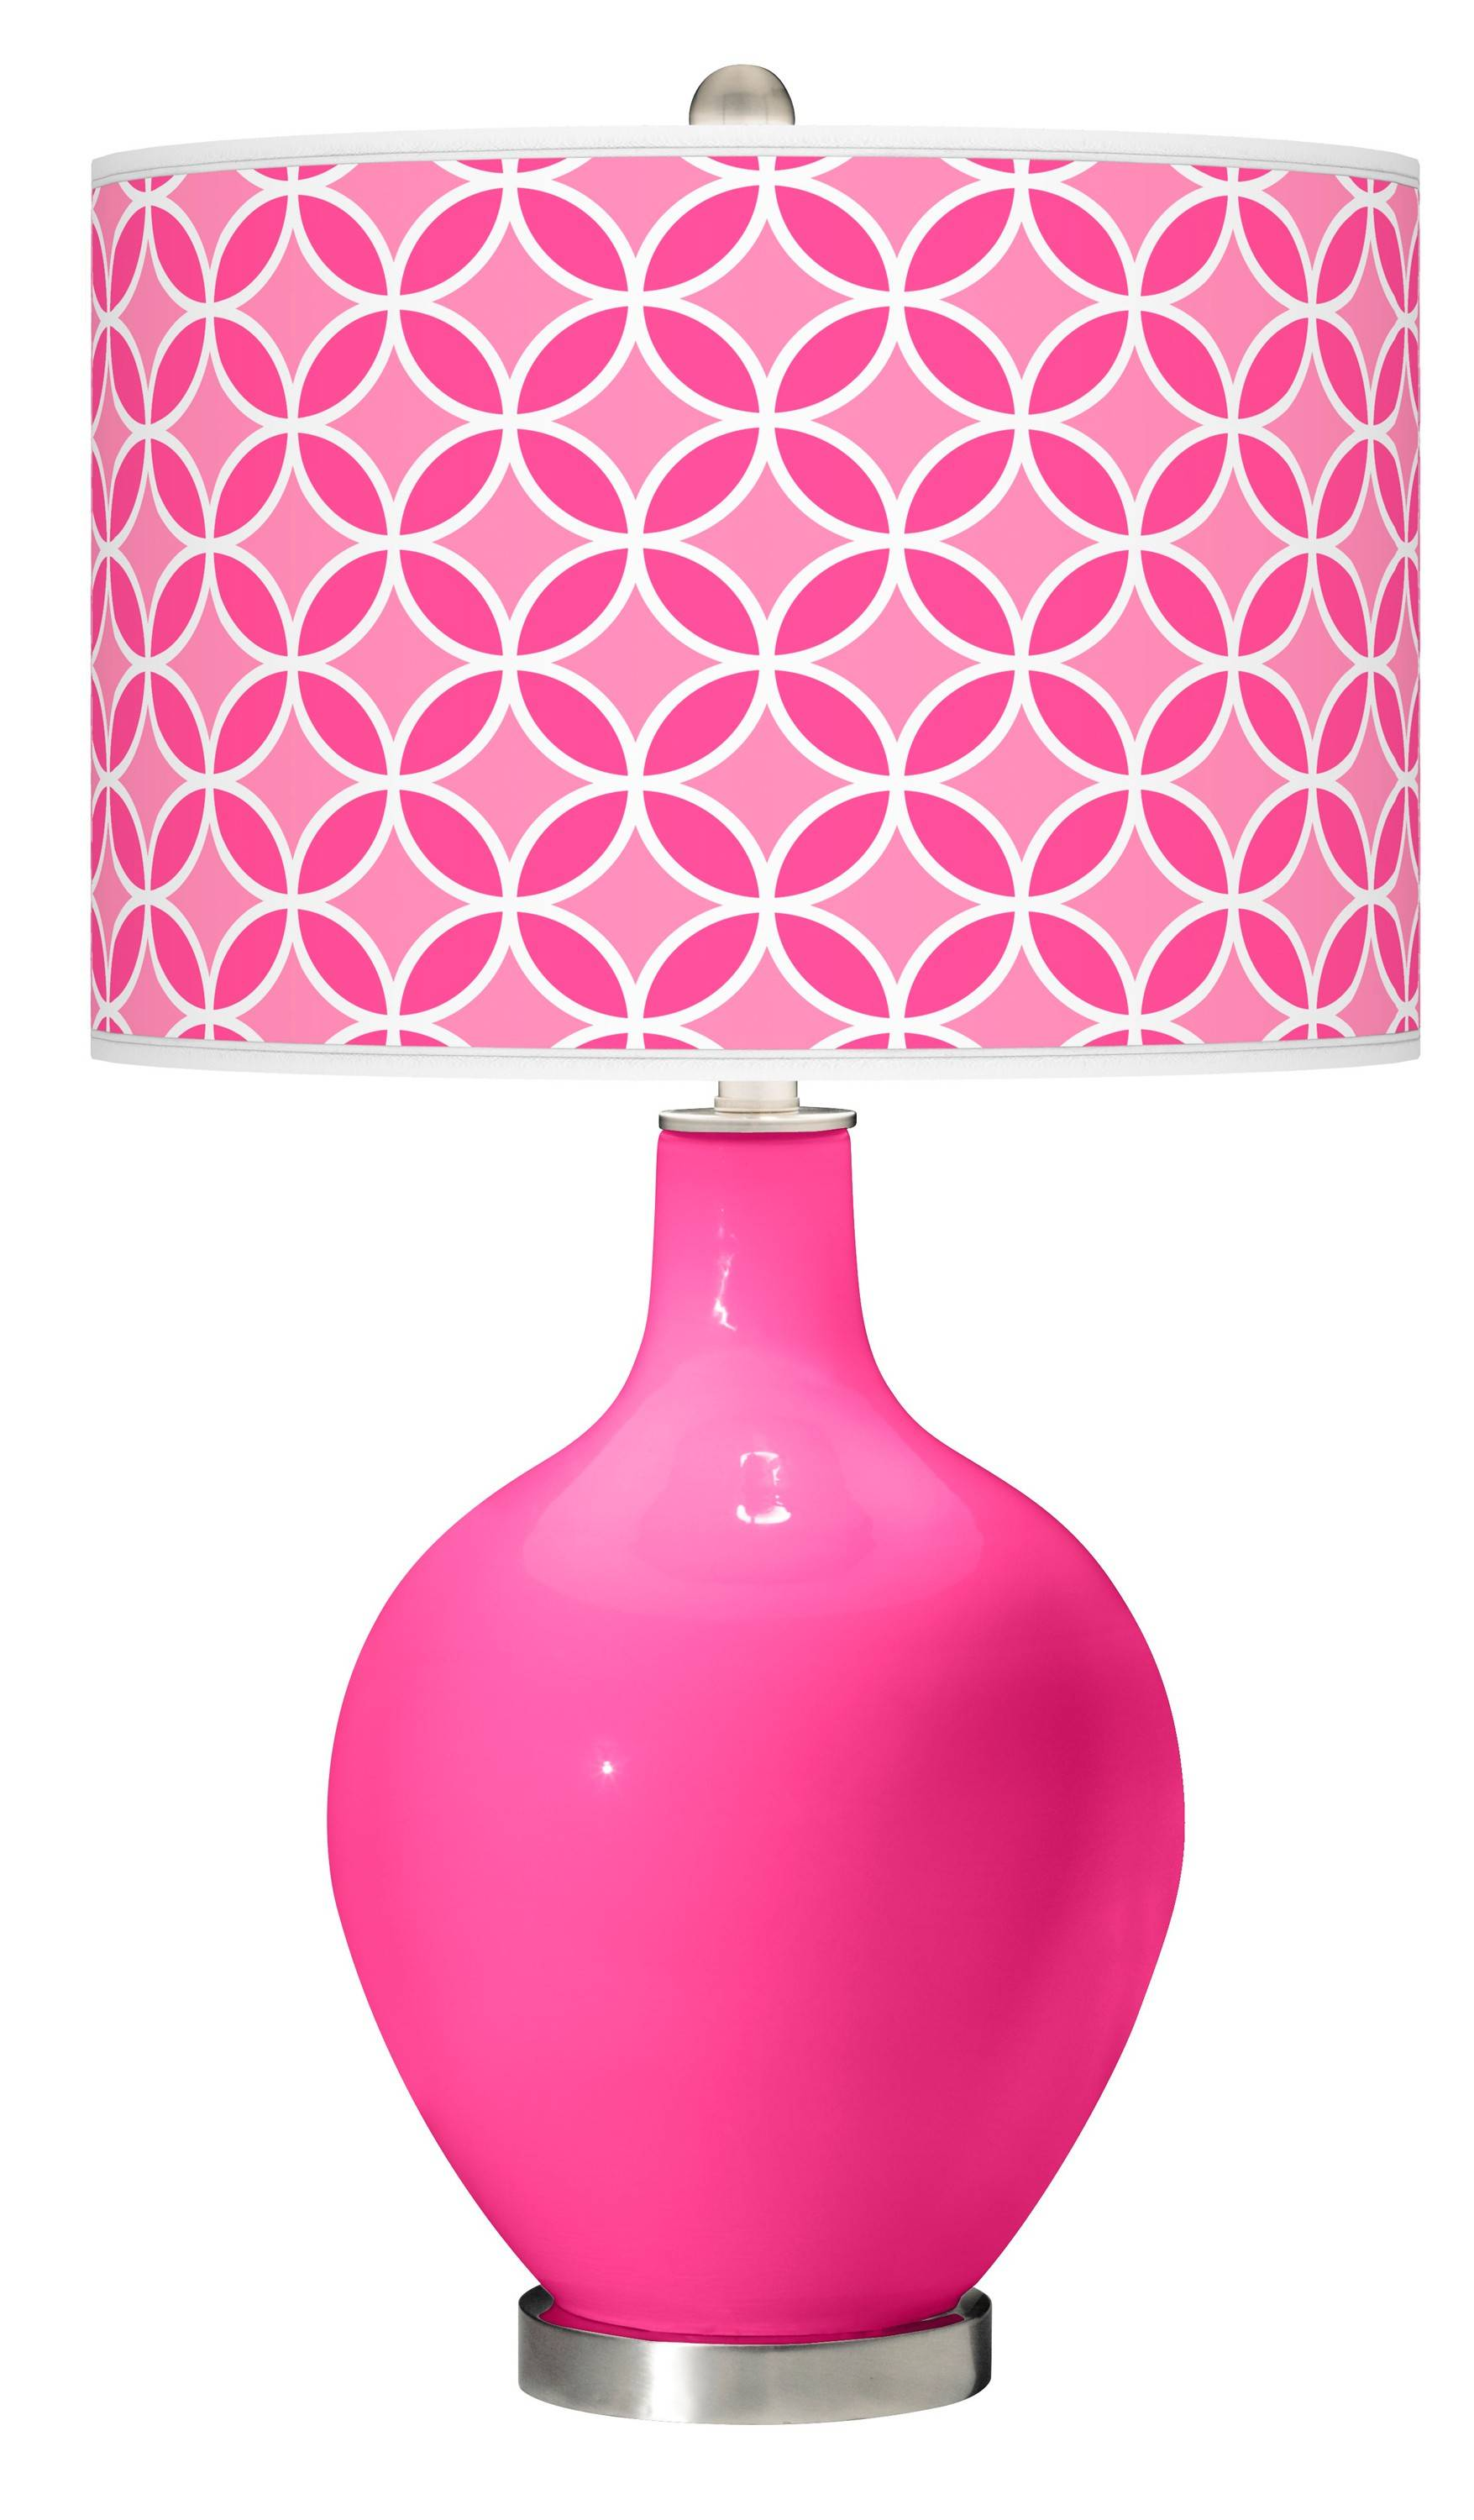 An Ovo table lamp in fuchsia glass brings a punch of pink into spring decor.